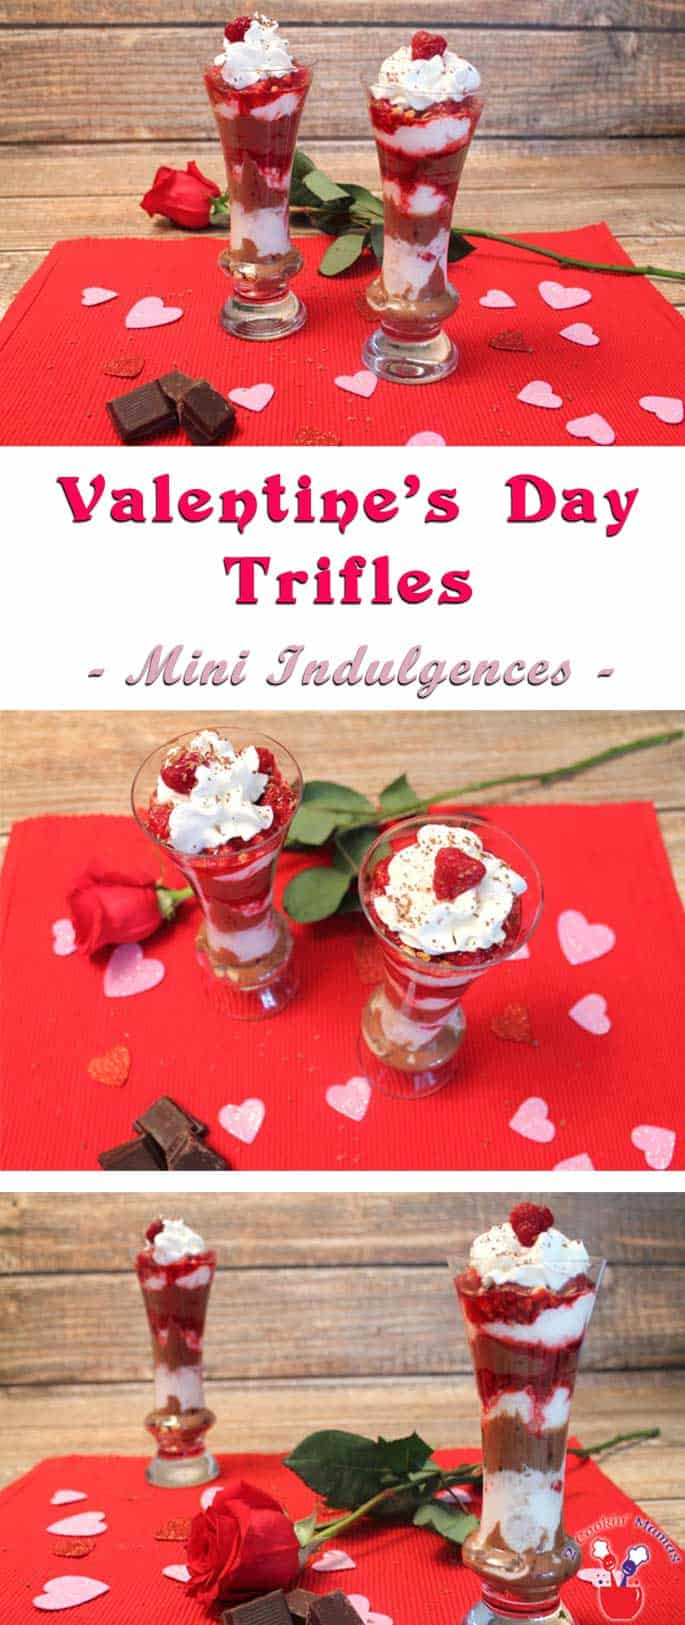 Deliciously decadent with dark chocolate & raspberries, this Valentine trifle is the perfect indulgence for a healthy Valentine's Day dessert. #ValentinesDay #dessert #yogurt chocolate #raspberries #recipe